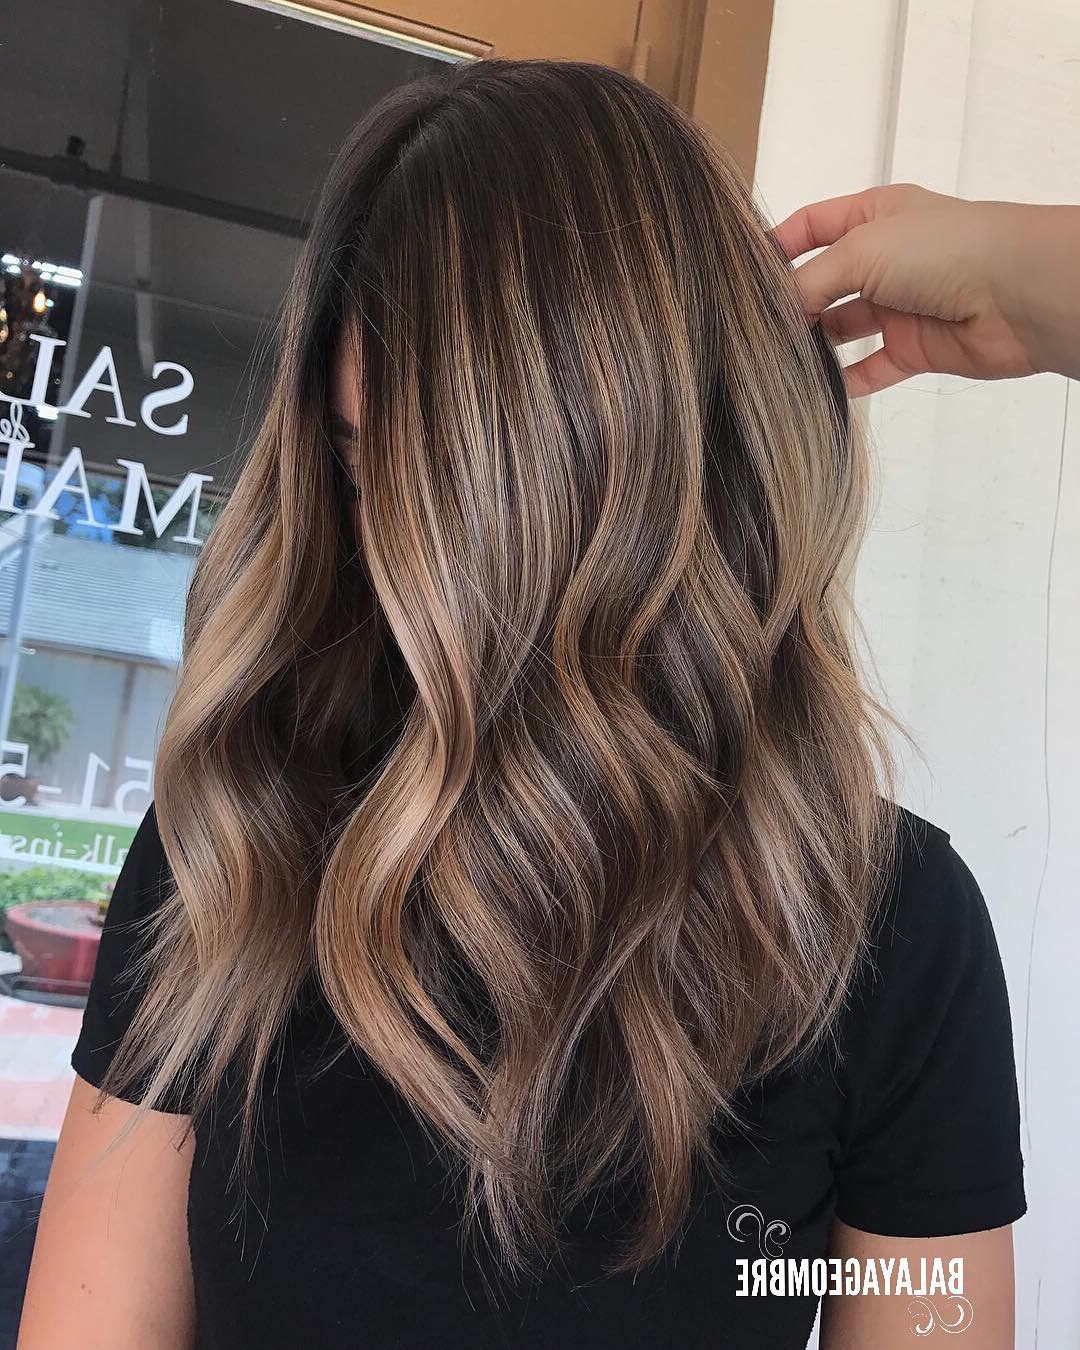 Well Known Brunette Medium Hairstyles For 10 Best Medium Layered Hairstyles 2019 – Brown & Ash Blonde Fashion (View 19 of 20)